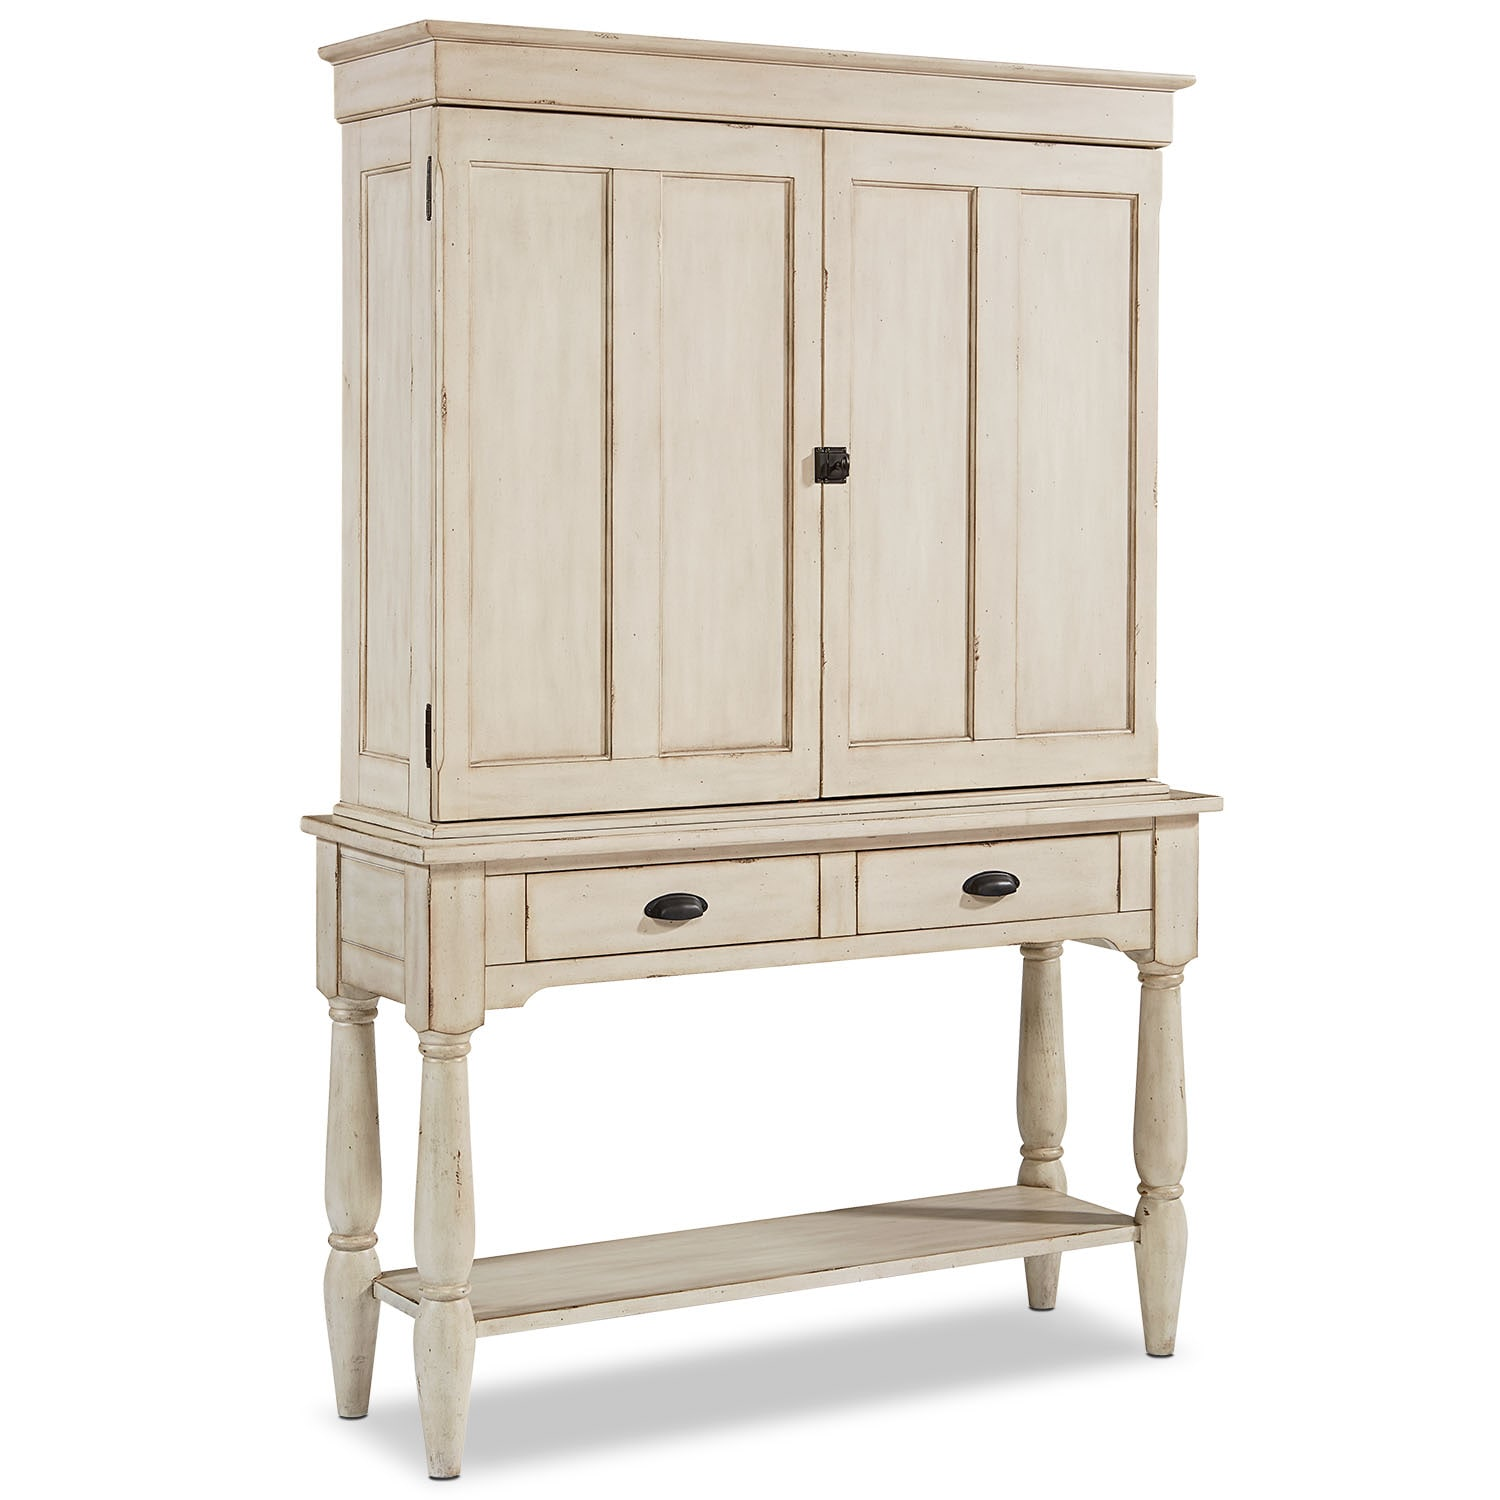 Dining Room Furniture - Taper Turned Console with Hutch - Antique White